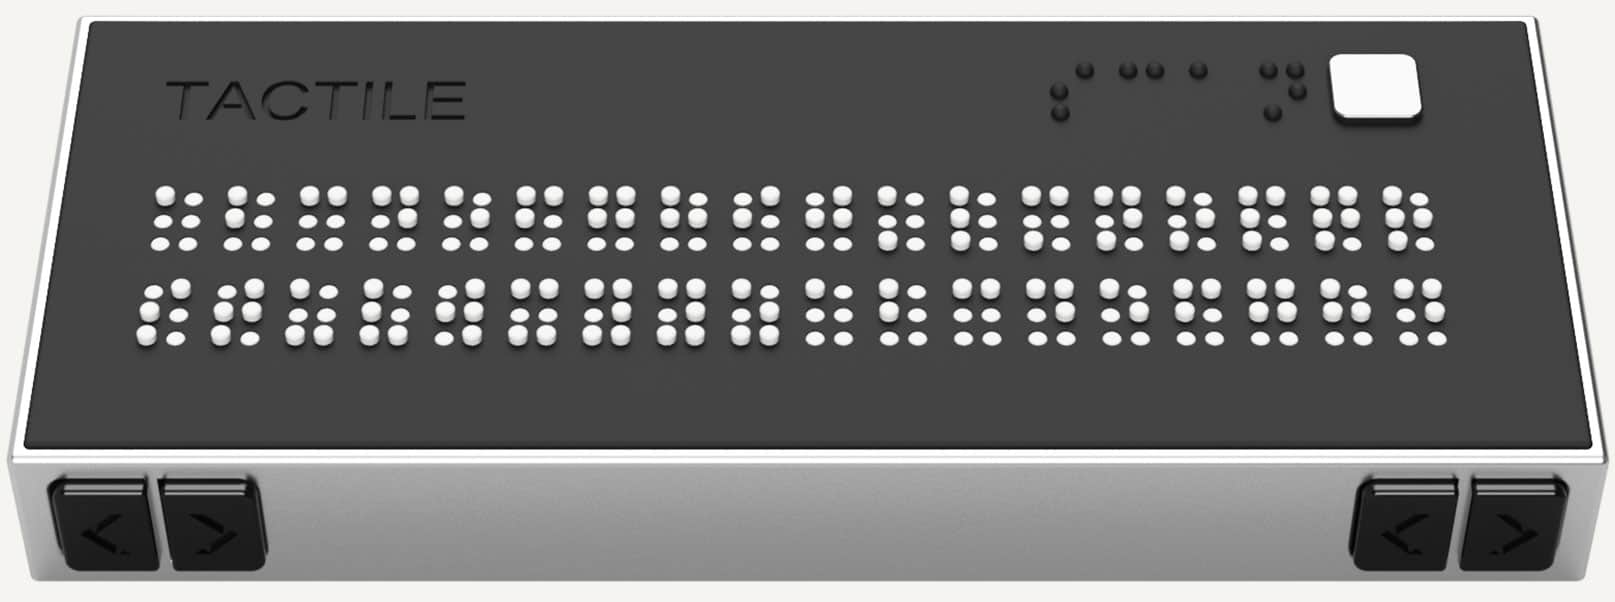 Microsoft patent program results in creation of text-to-braille translator device - onmsft. Com - september 21, 2016